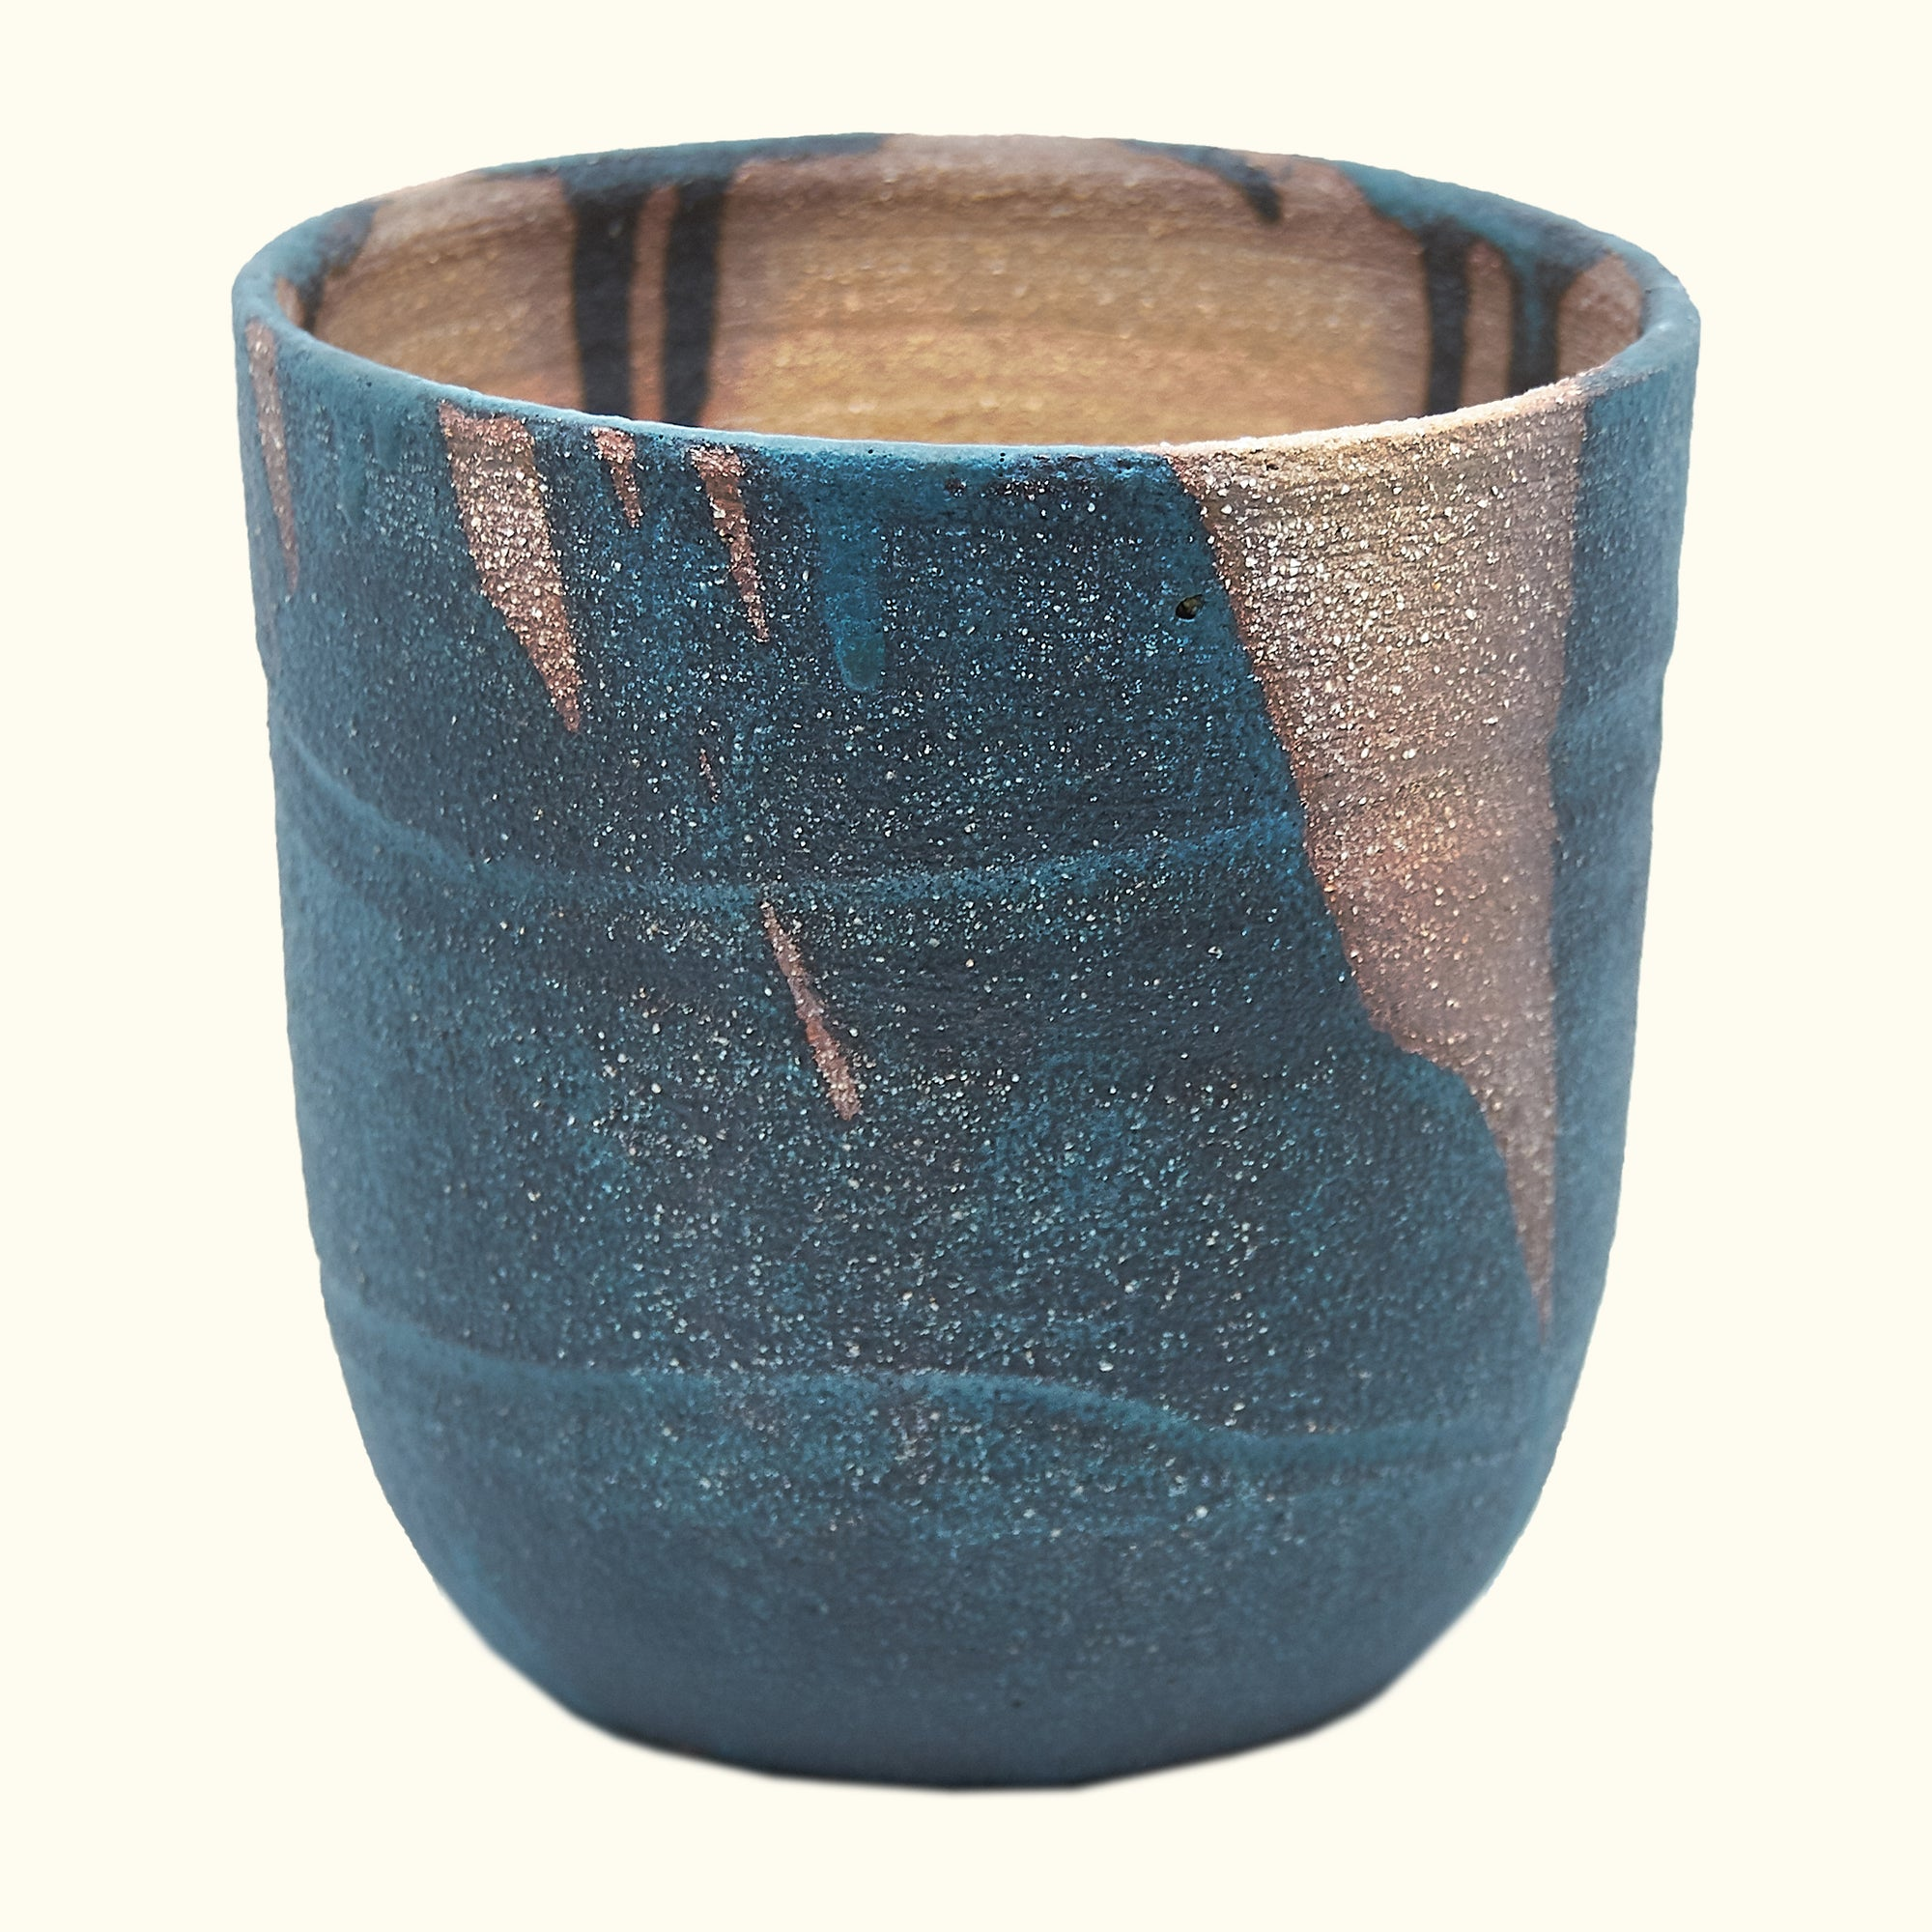 Made by Bowie Cenote Planter